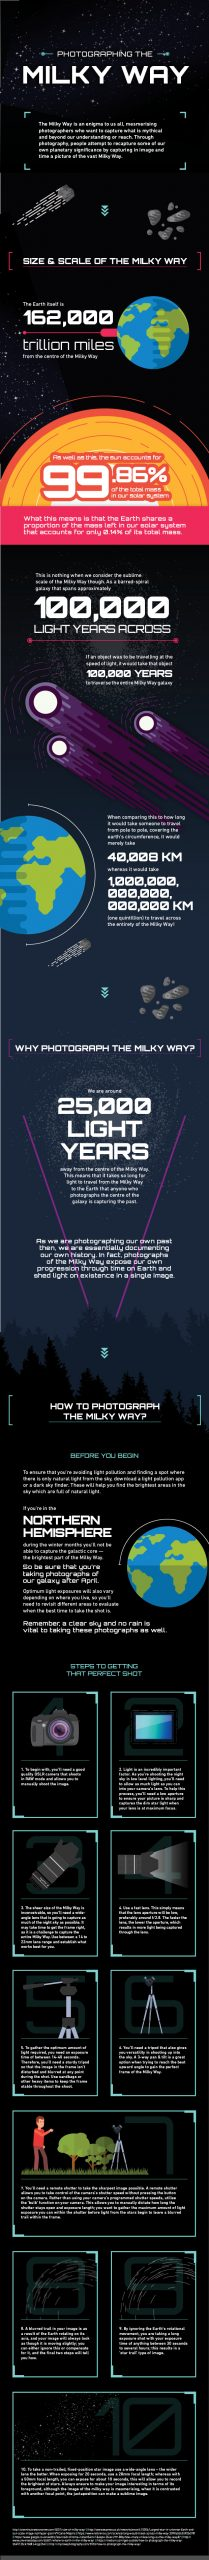 Photographing the Milky Way Infographic v3.jpg